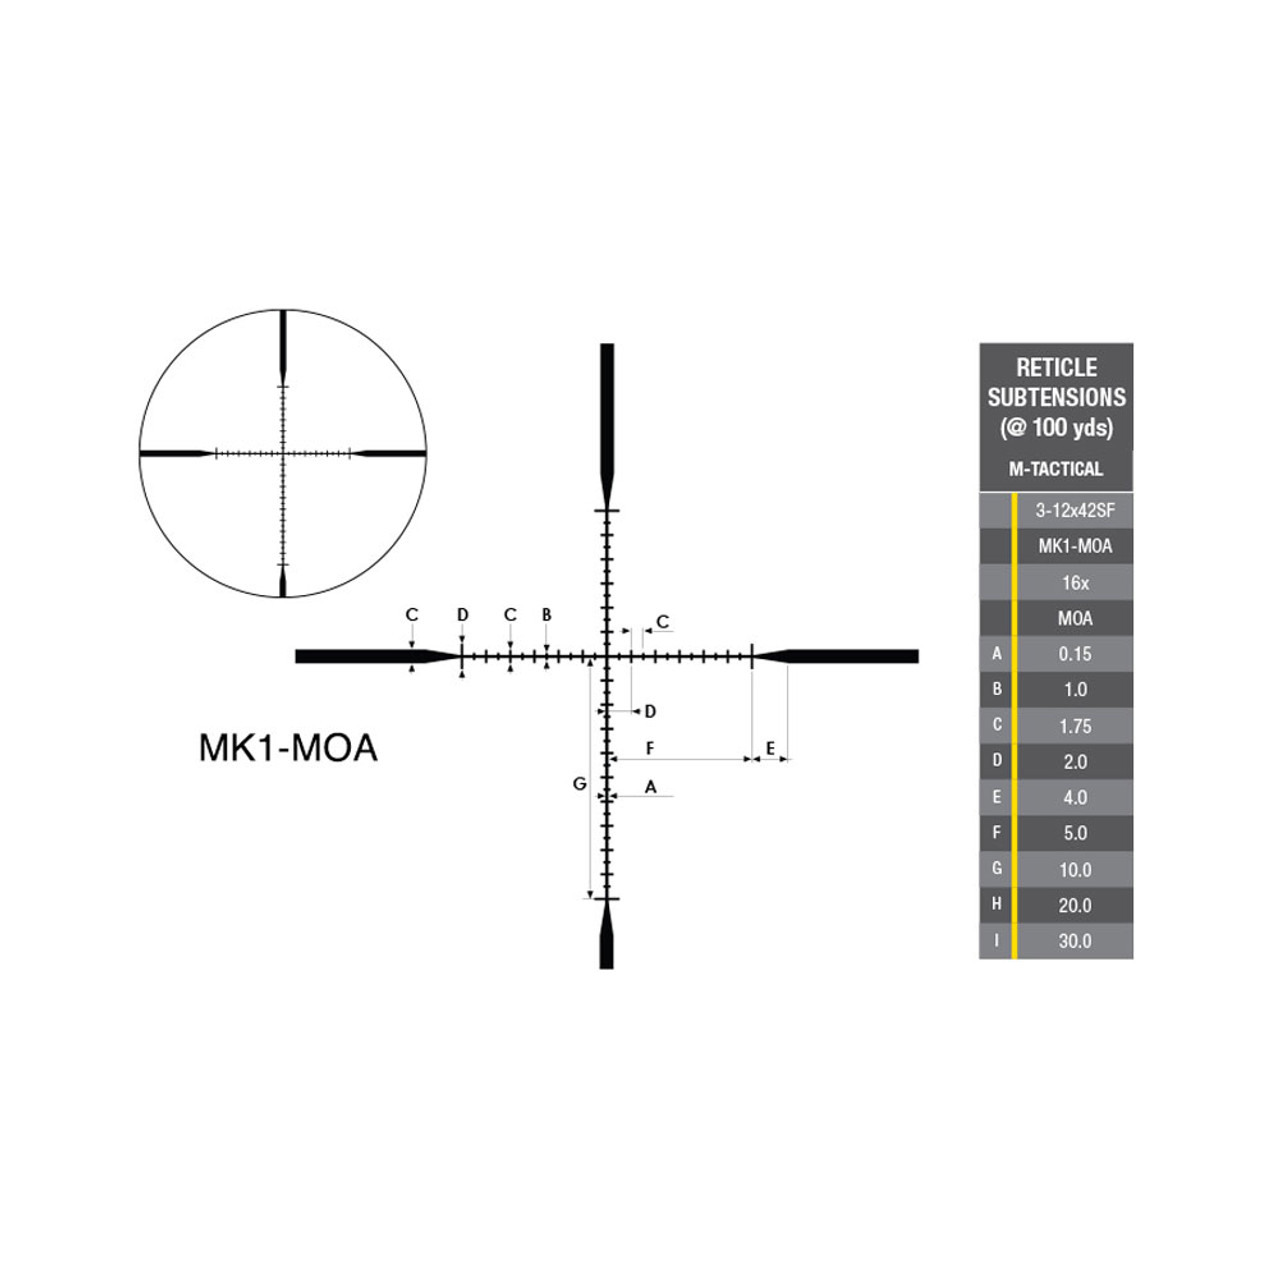 hight resolution of ar 15 schematic diagram scientific scope diagram m4 rifle parts diagram bolt